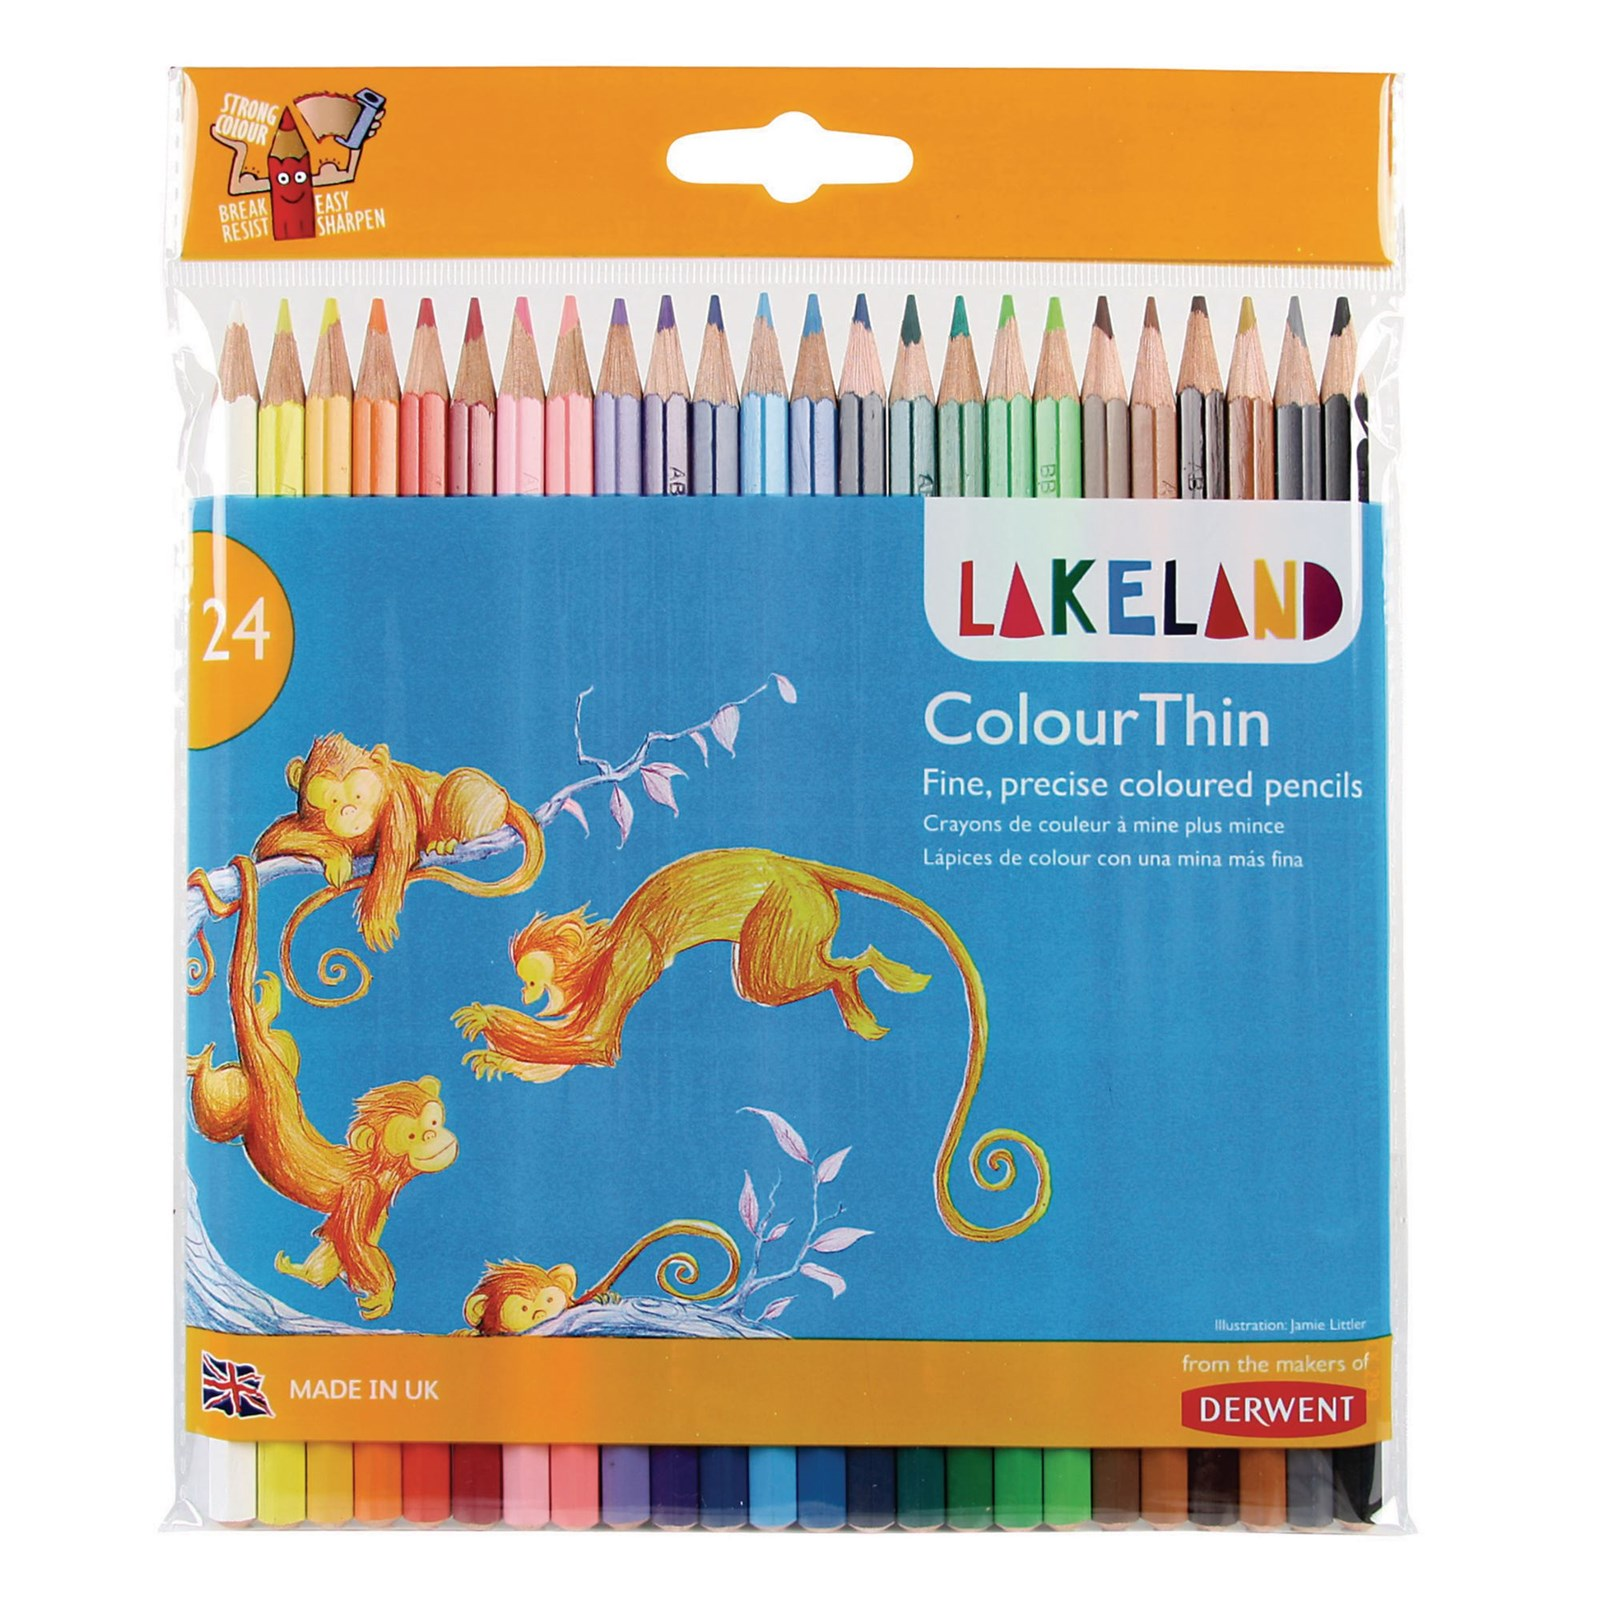 Lakeland Colourthin Fine Coloured Pencils - Assorted - Pack of 144